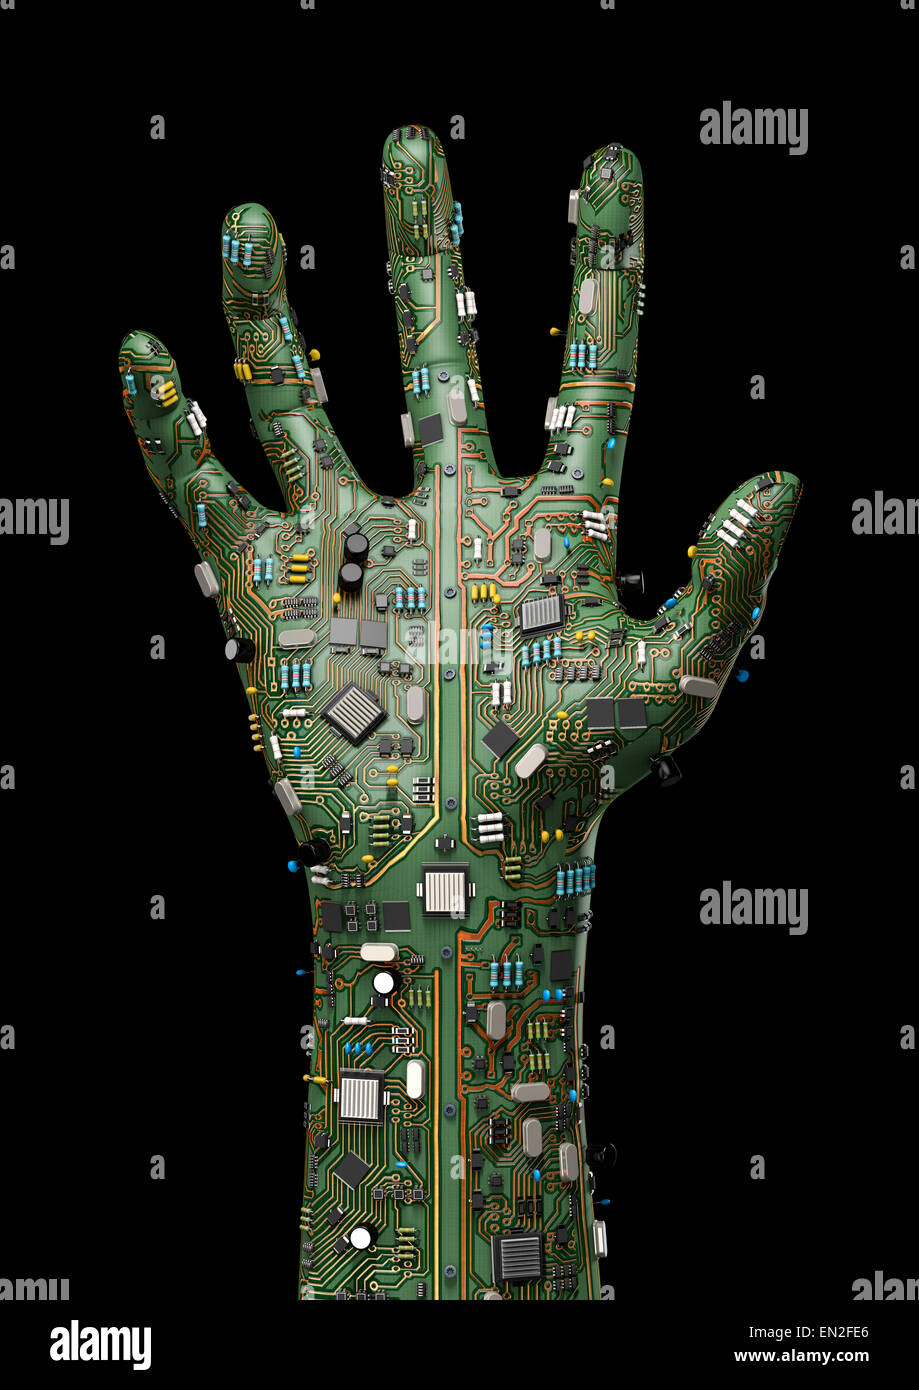 Tech 3d Free Live Wallpaper 3d Render Of Raised Hand Made Of Computer Circuit Board